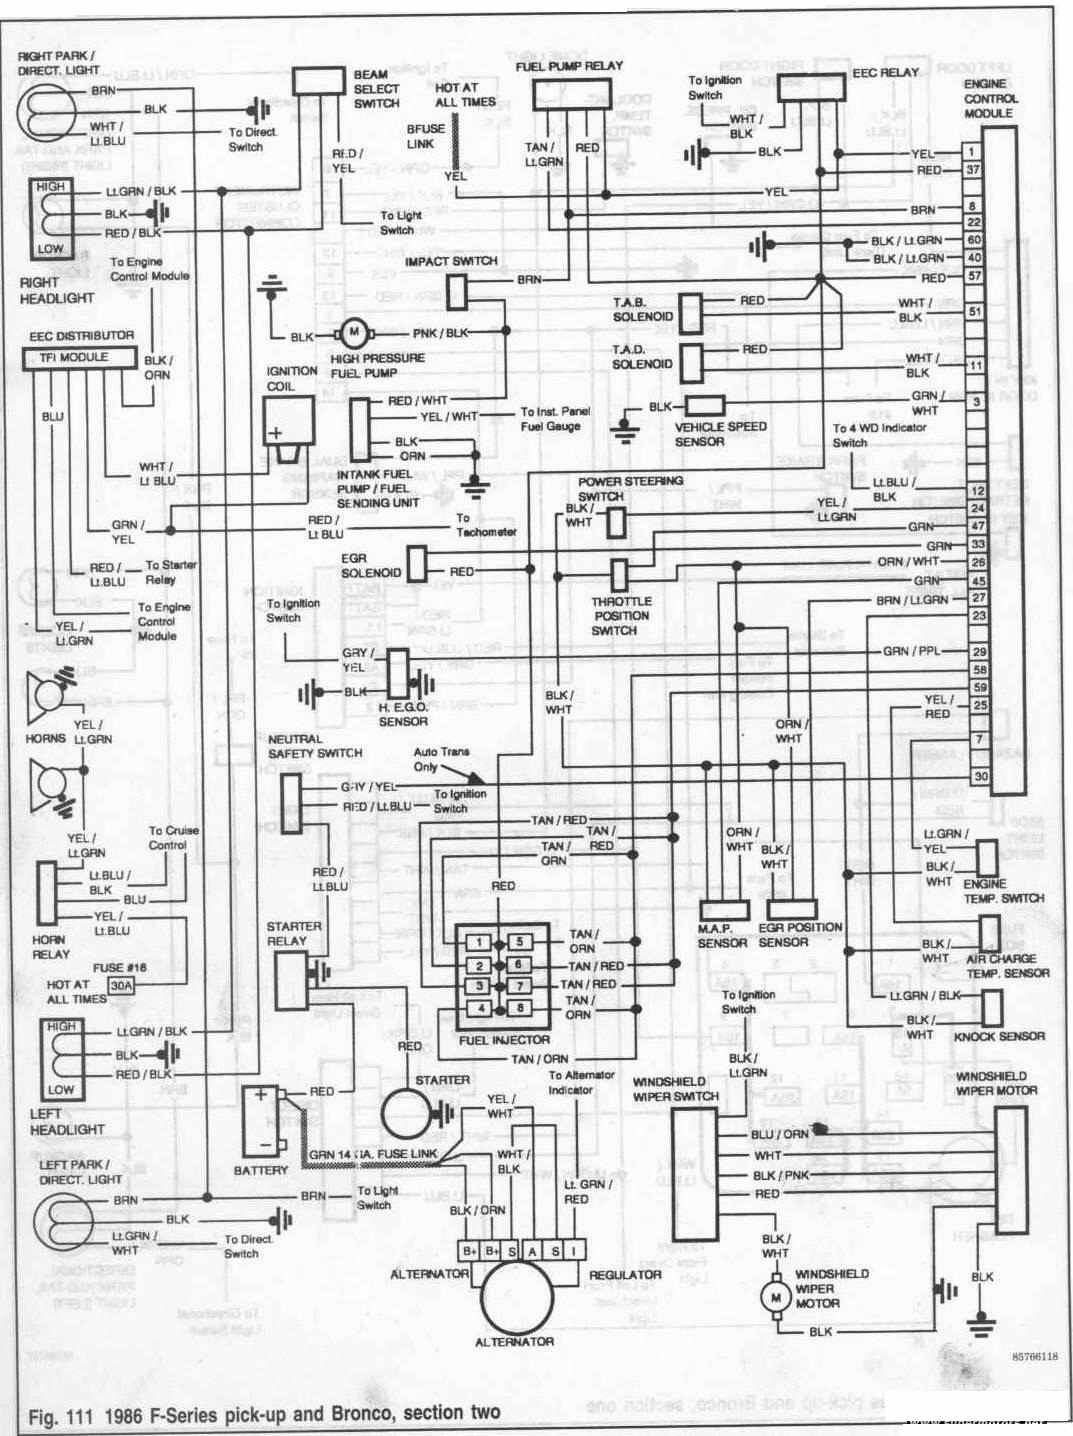 Awesome 57 Thunderbird Wiring Diagram Ensign - Electrical Diagram ...